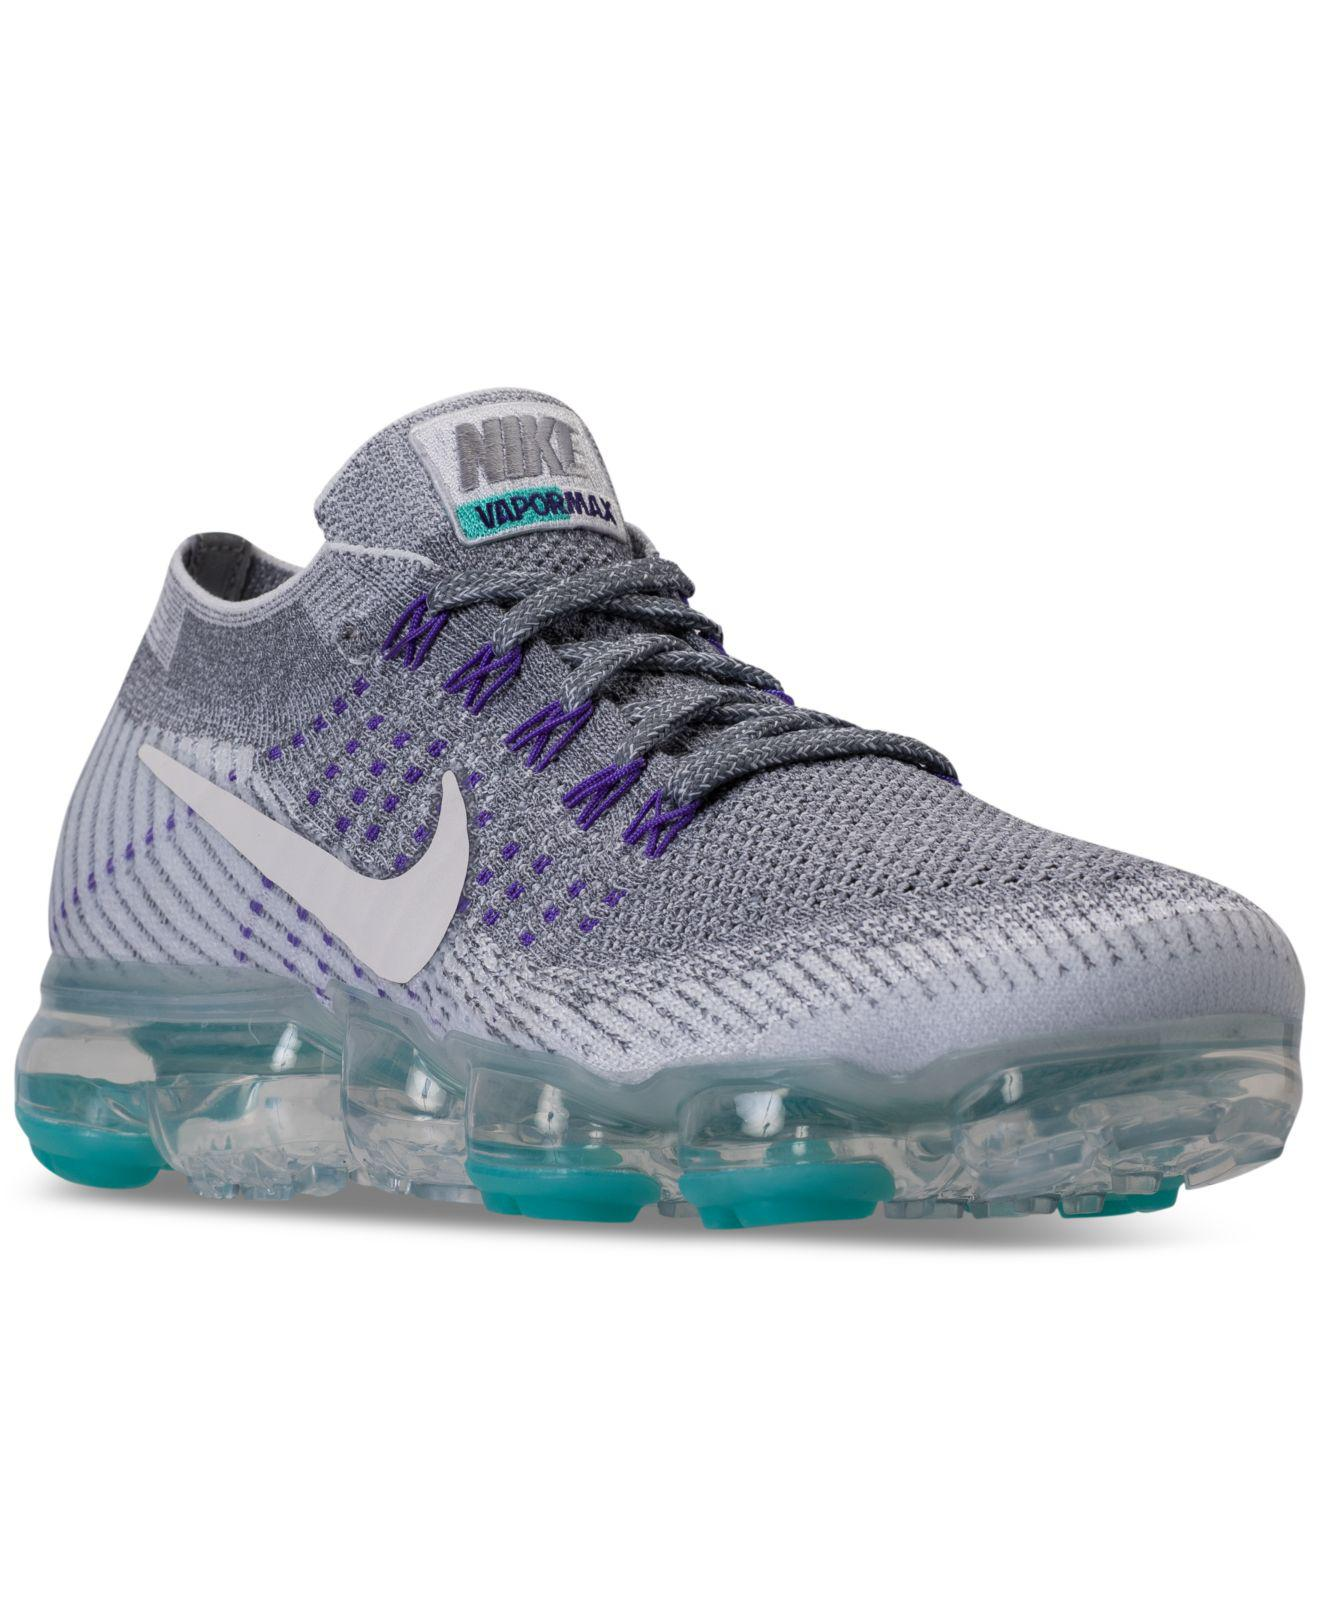 quality design bce3f 21cef Nike Gray Air Vapormax Flyknit Running Sneakers From Finish Line